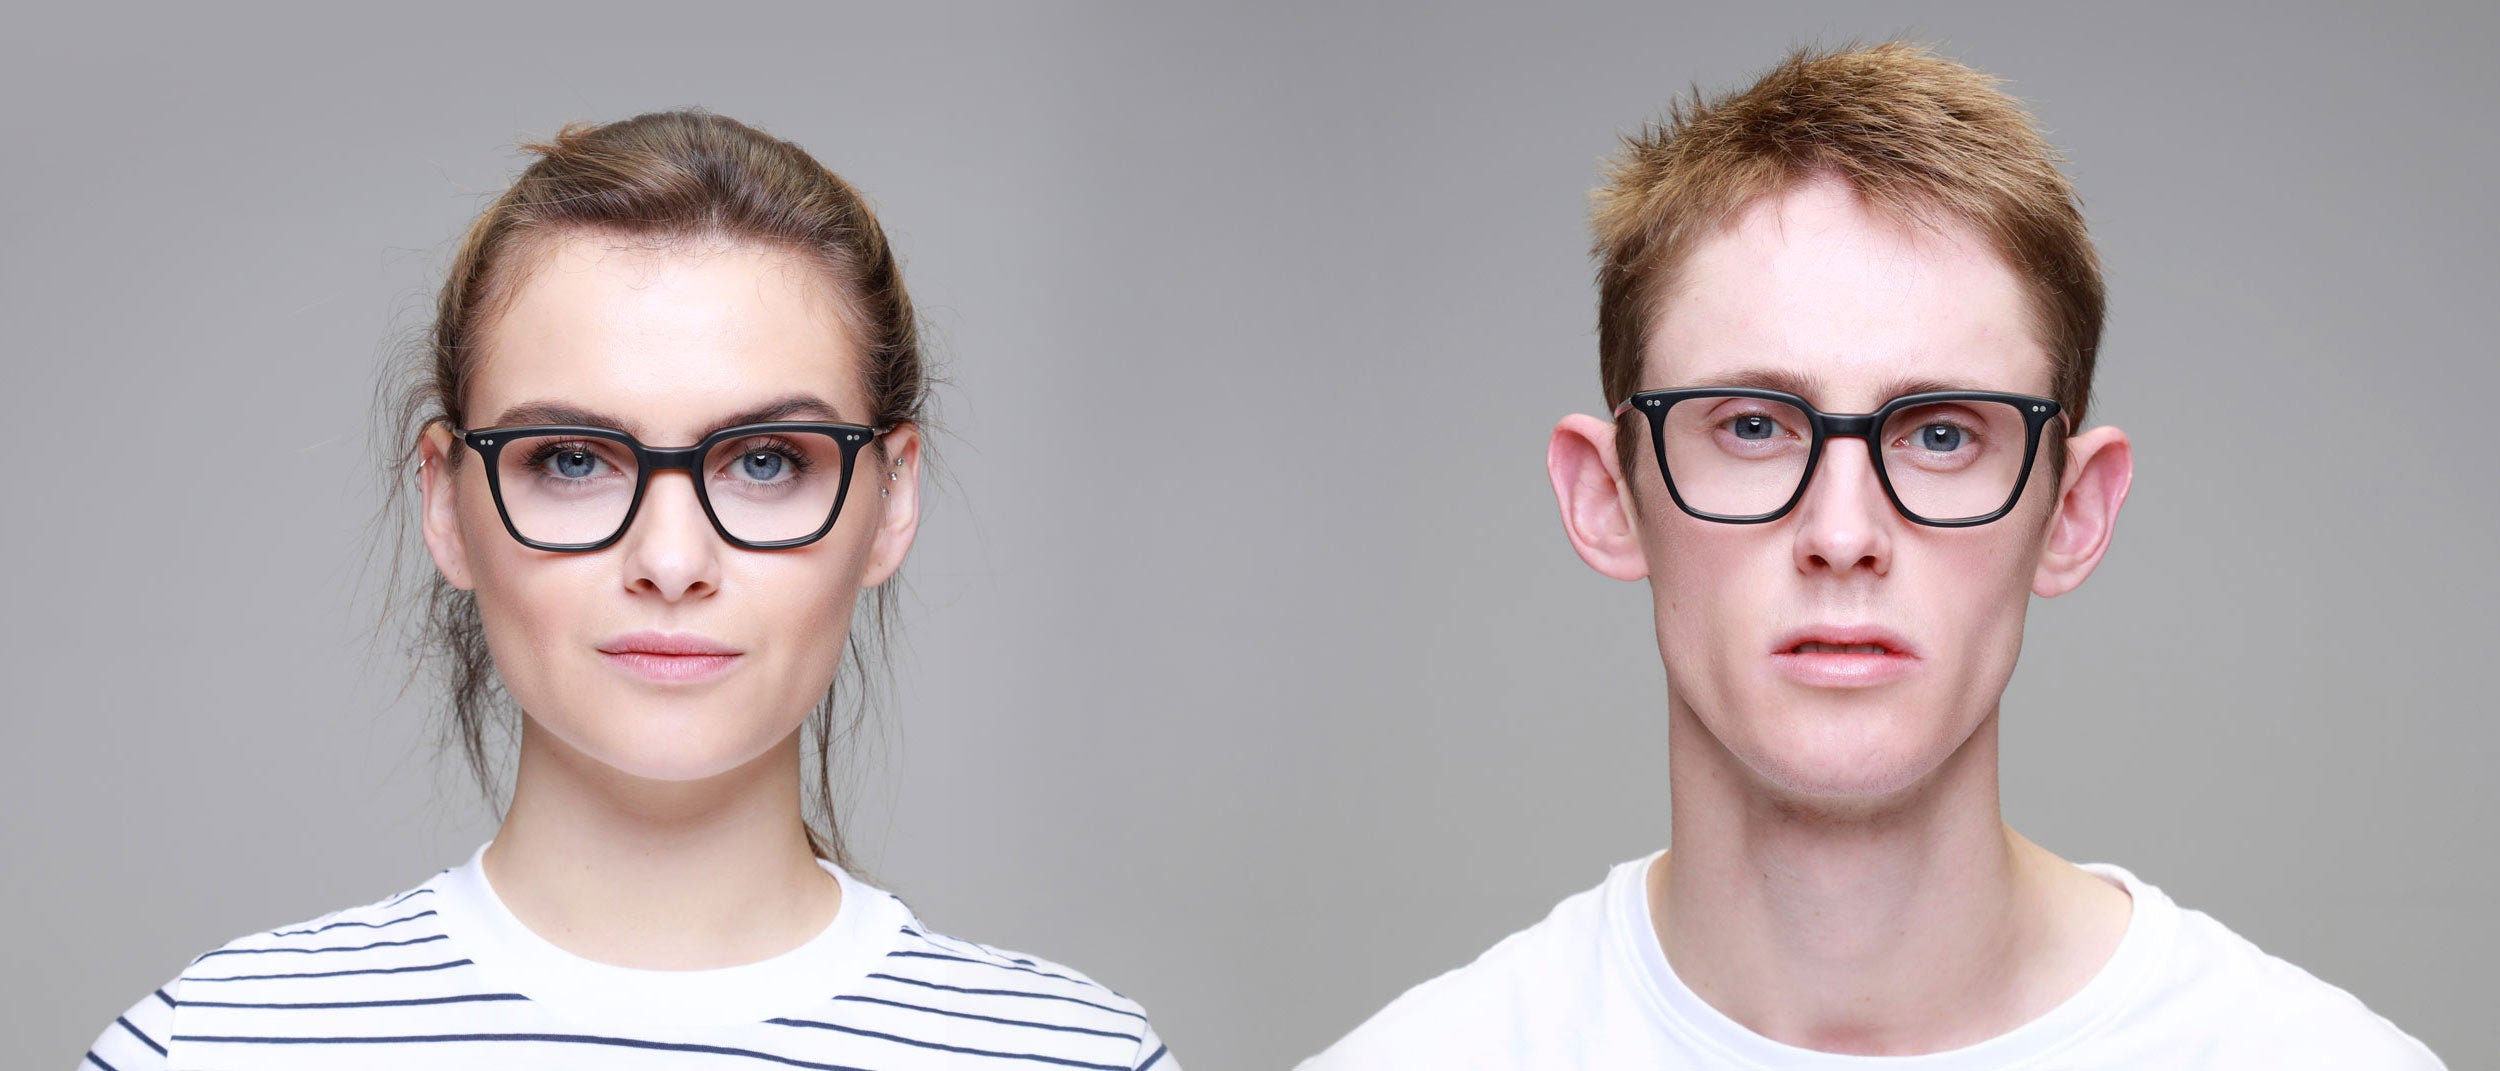 Man-and-Woman-Wearing-Varifocal-small-square-black-glasses